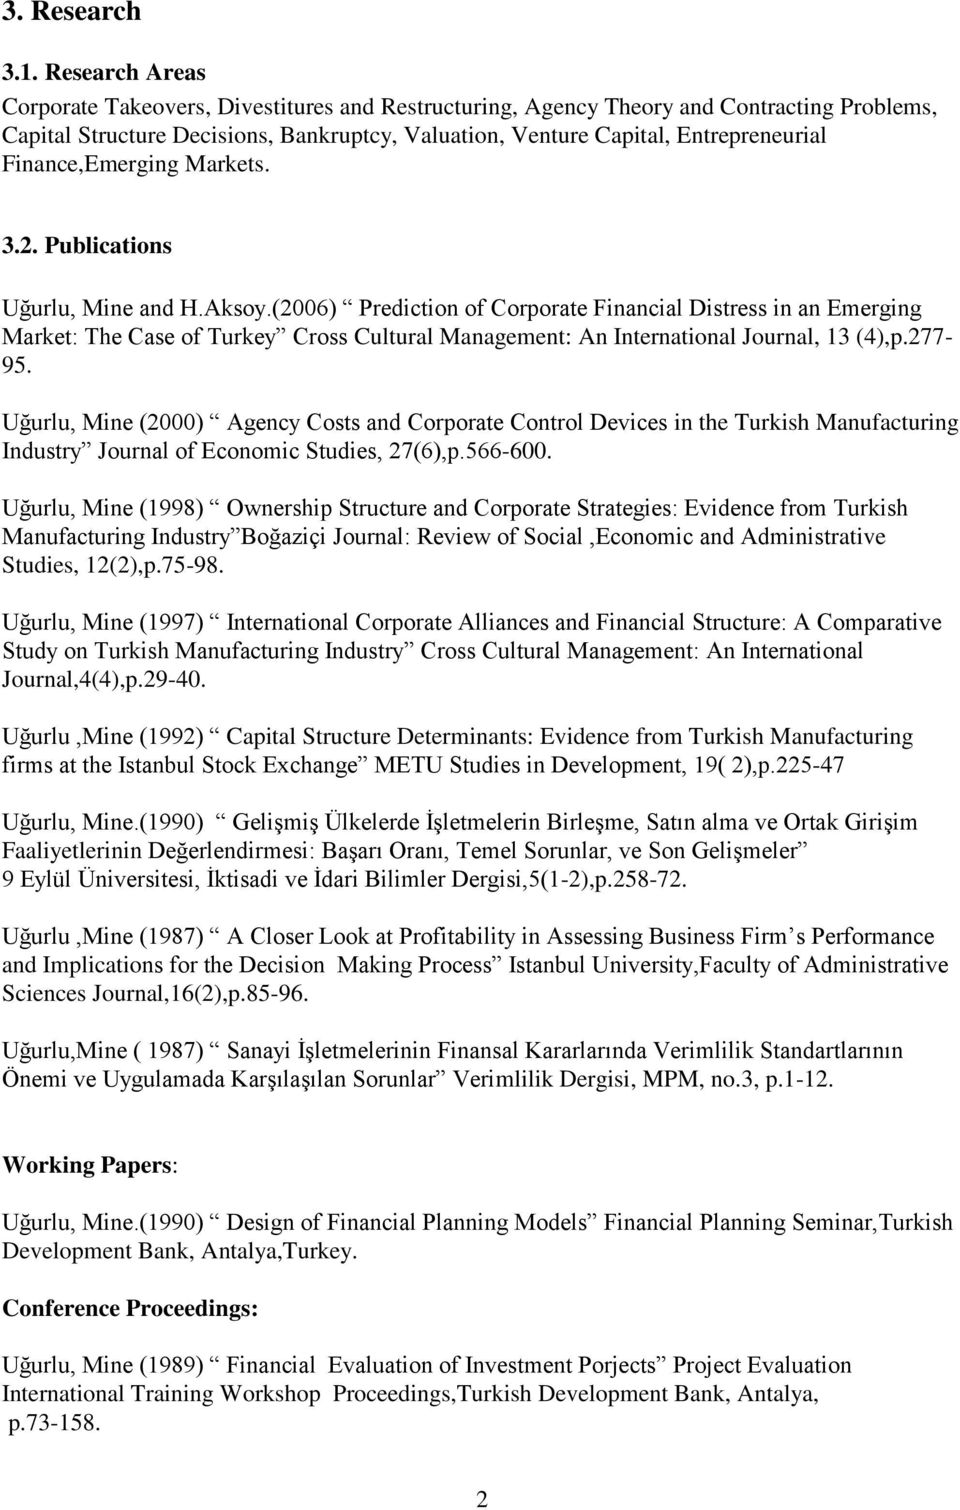 Finance,Emerging Markets. 3.2. Publications Uğurlu, Mine and H.Aksoy.